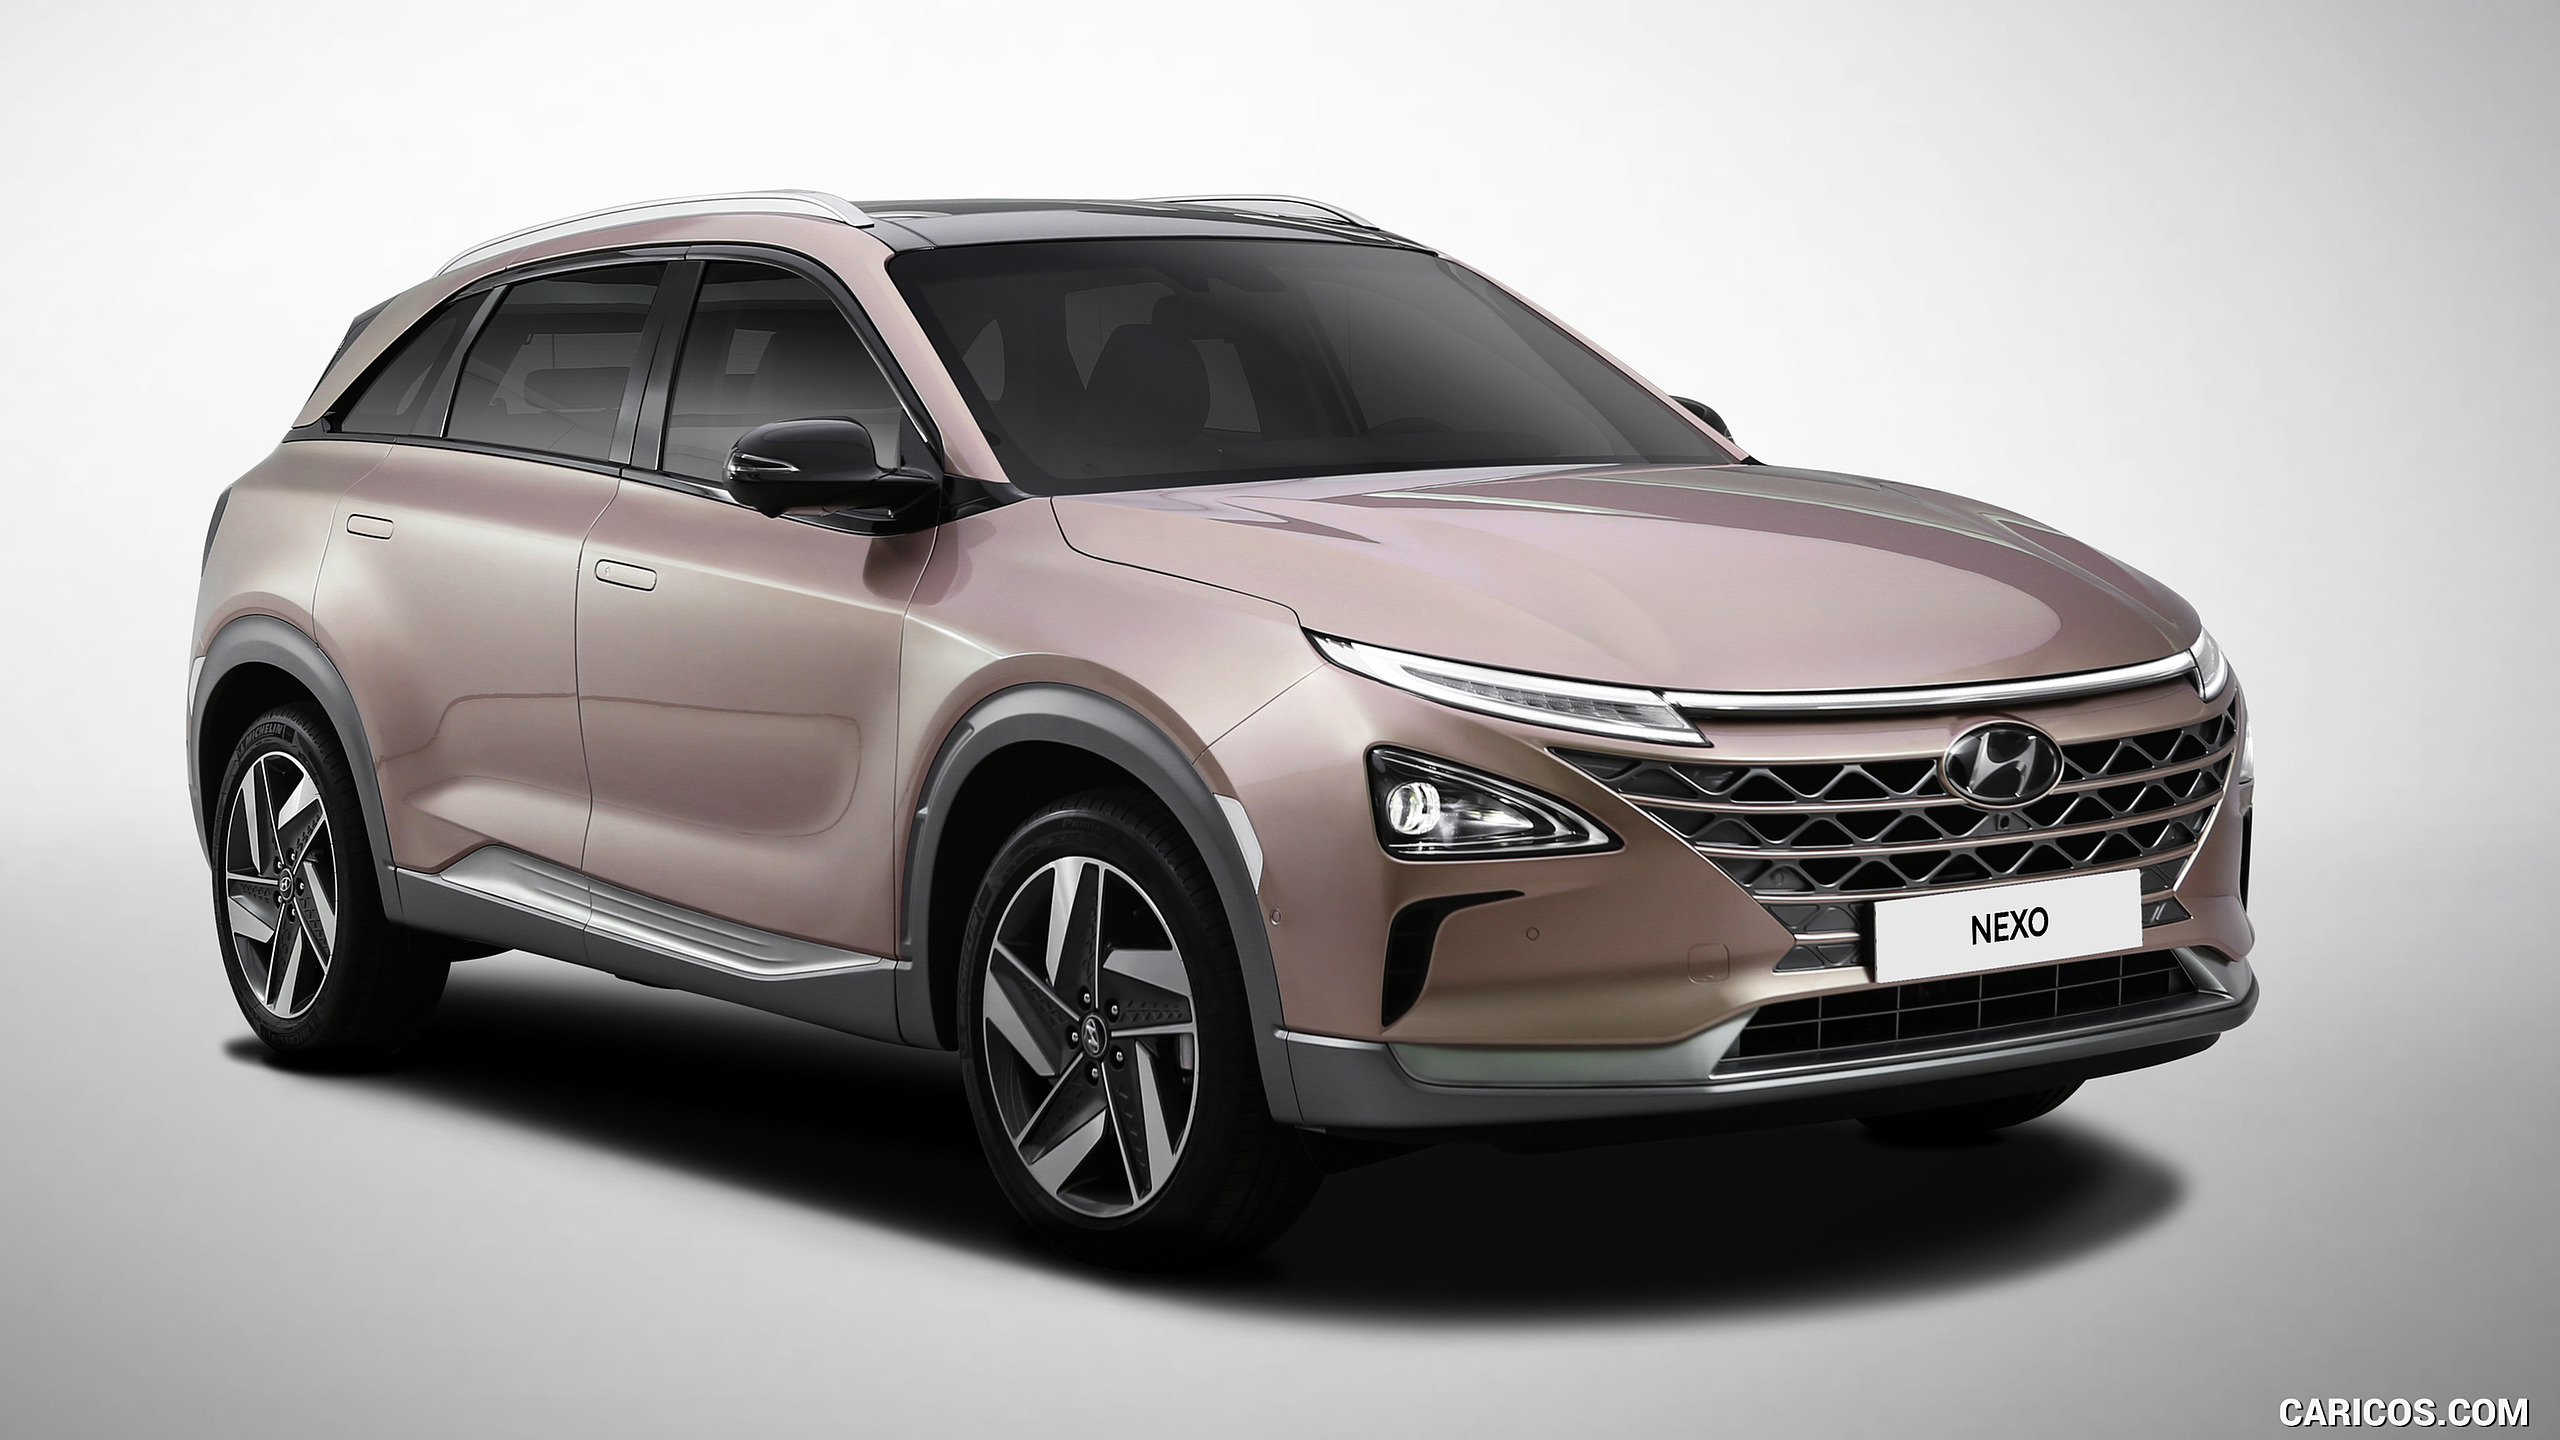 2019 Hyundai NEXO FCEV   Front Three Quarter HD Wallpaper 55 2560x1440